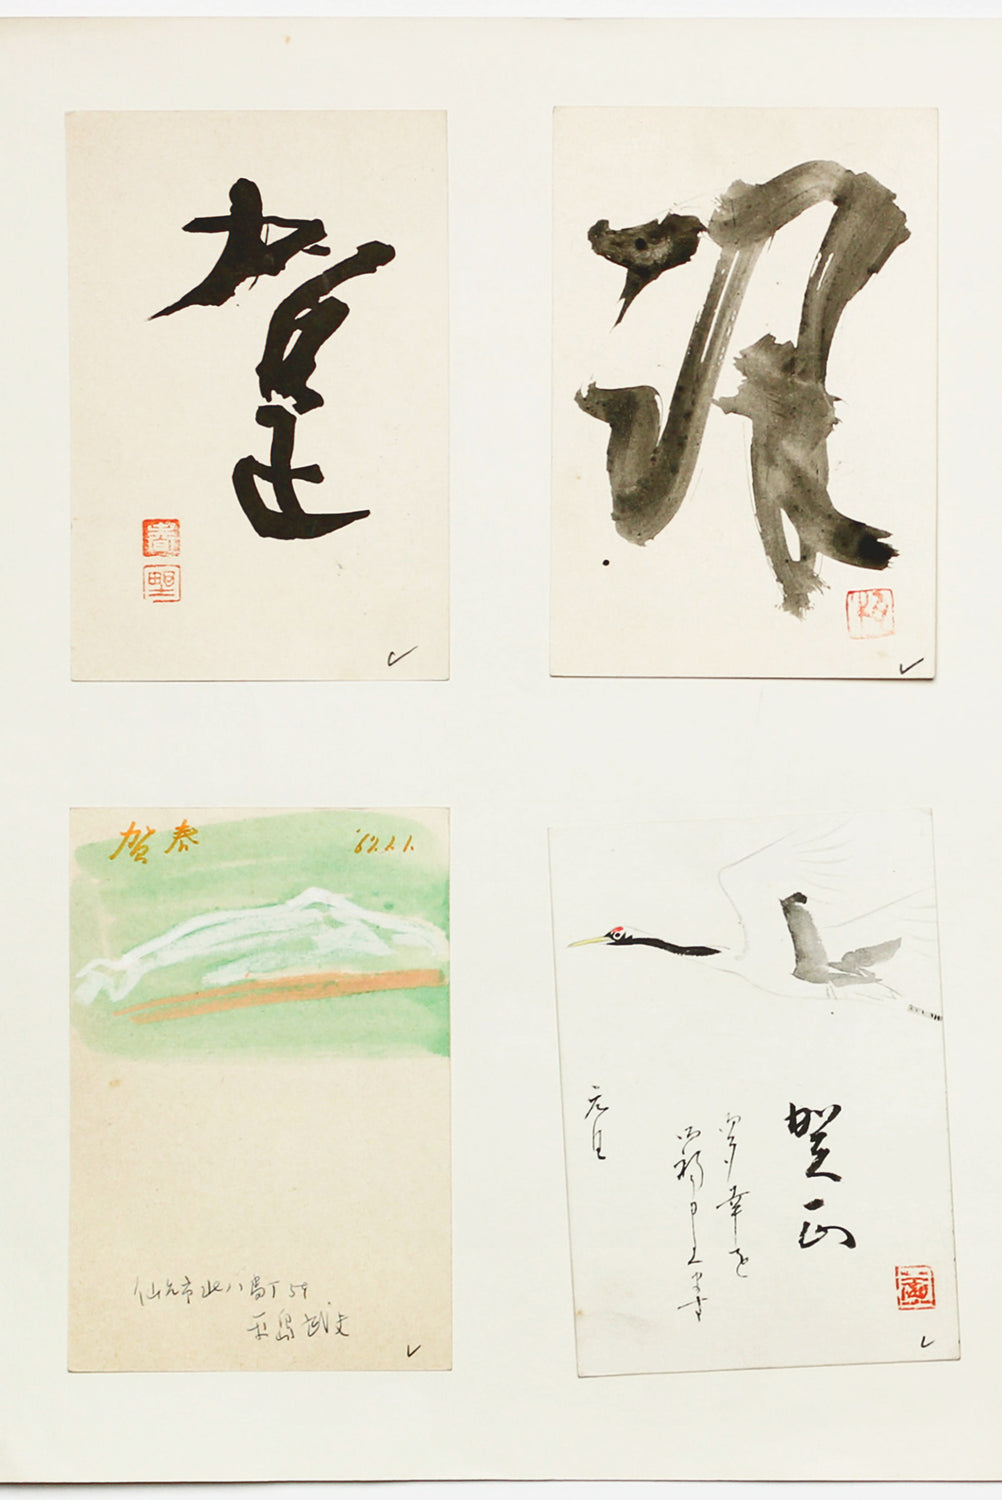 Vintage Calligraphy and Art Post Card Set (8)